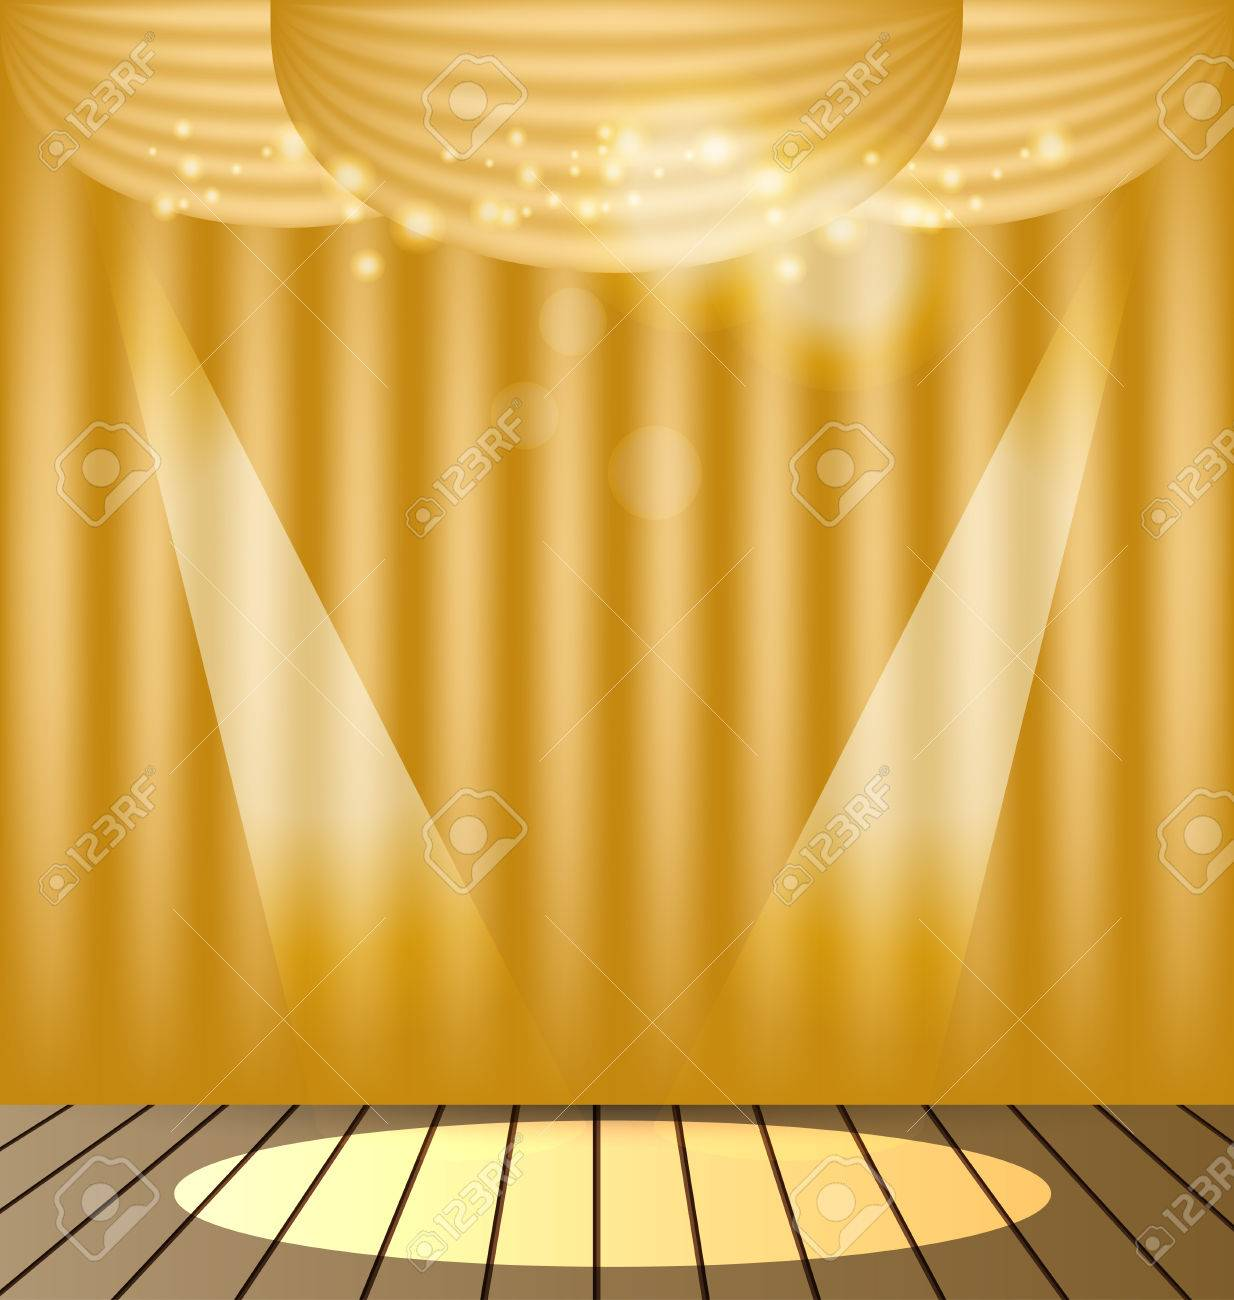 Gold Curtains Vector Background Royalty Free Cliparts, Vectors, And ... for Gold Curtains Background  587fsj